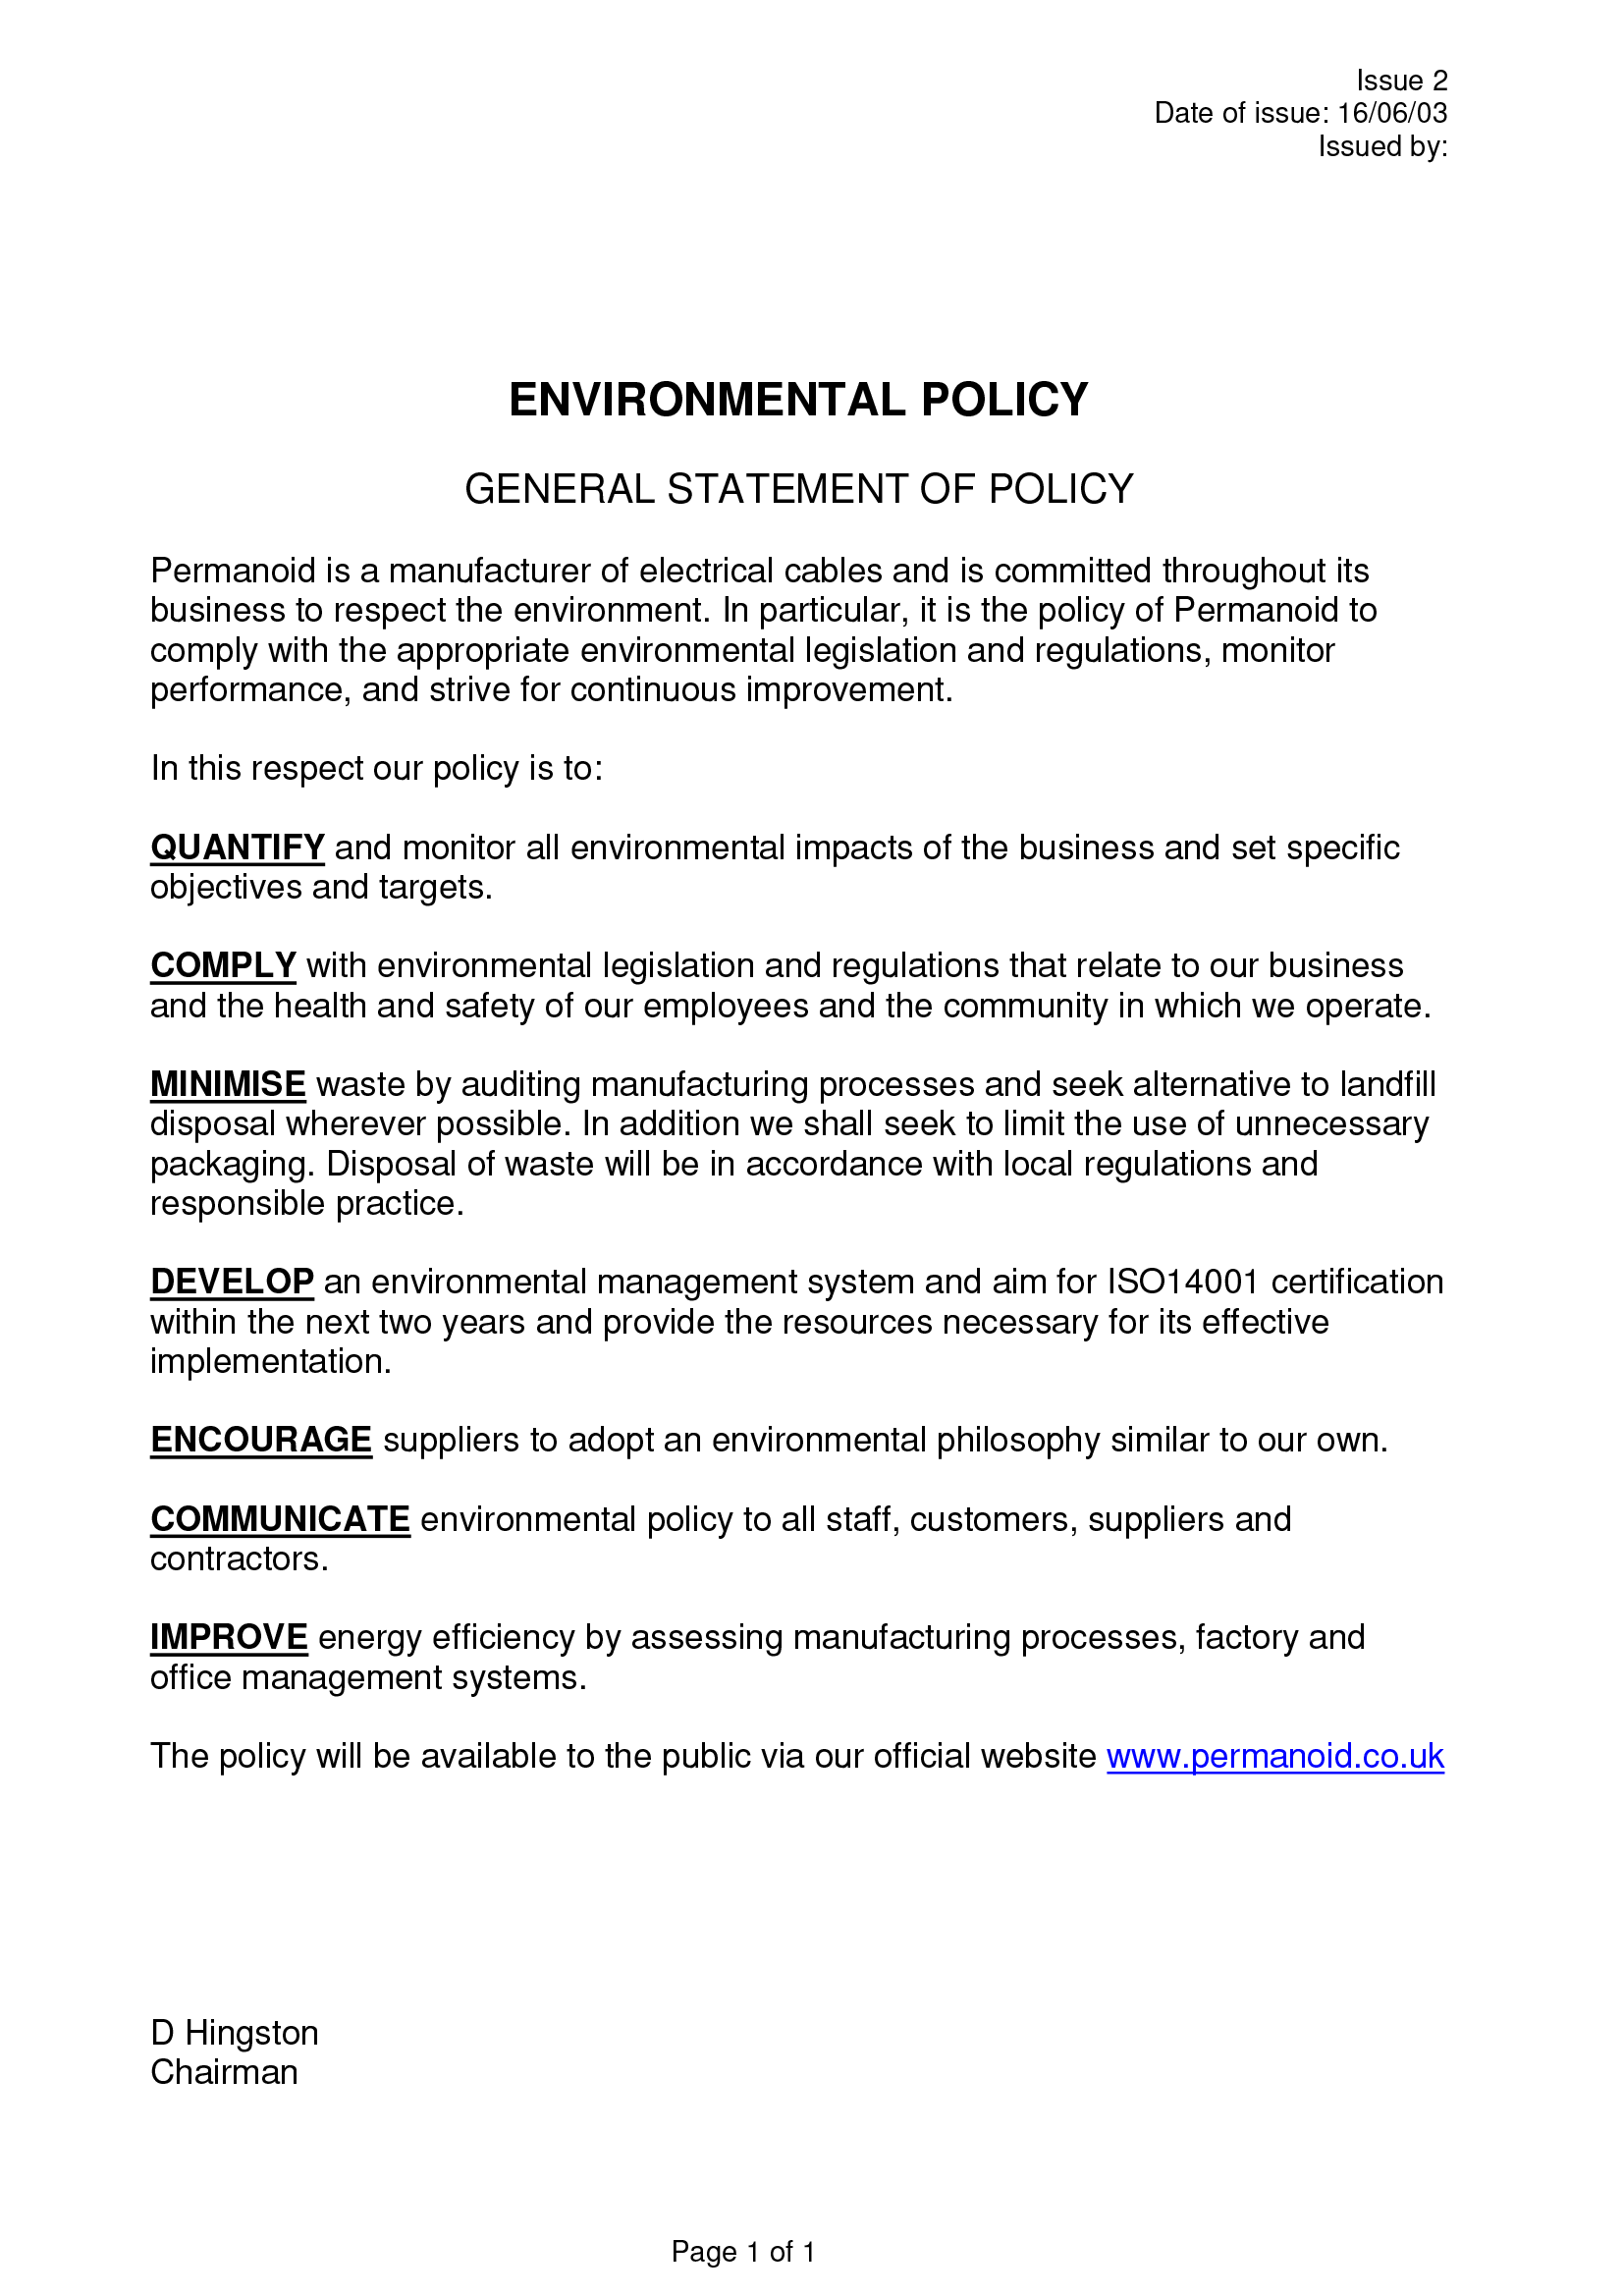 Environmental Policy Permanoid Uk Cable And Wire